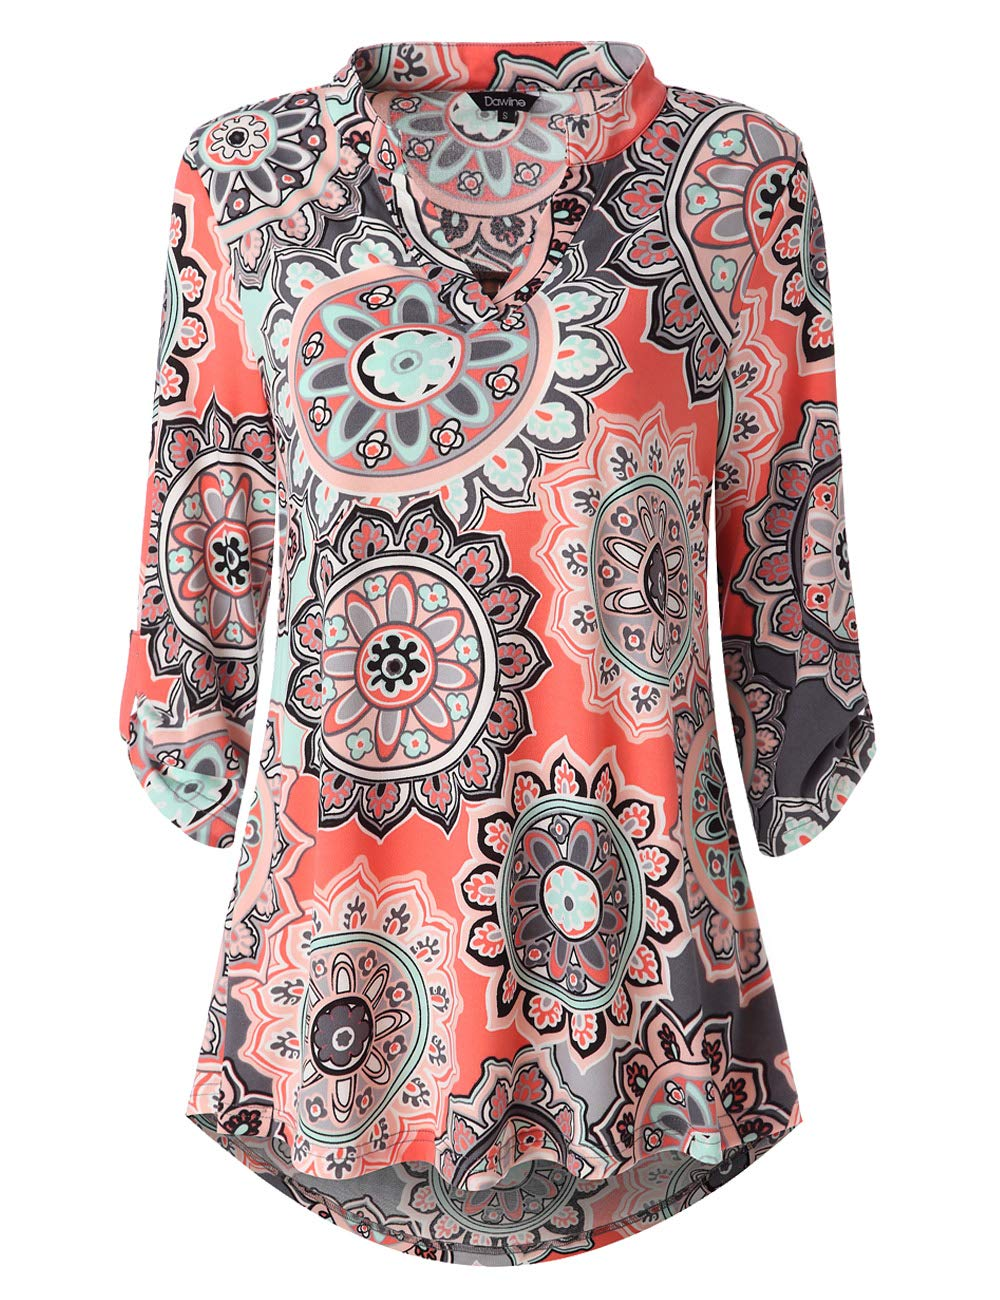 Dawiine Womens Casual Tunic Shirts 3/4 Roll Sleeve Floral Print Pullover Tunic Blouse Tops (S-XXL) (Medium, Mutil Pink)